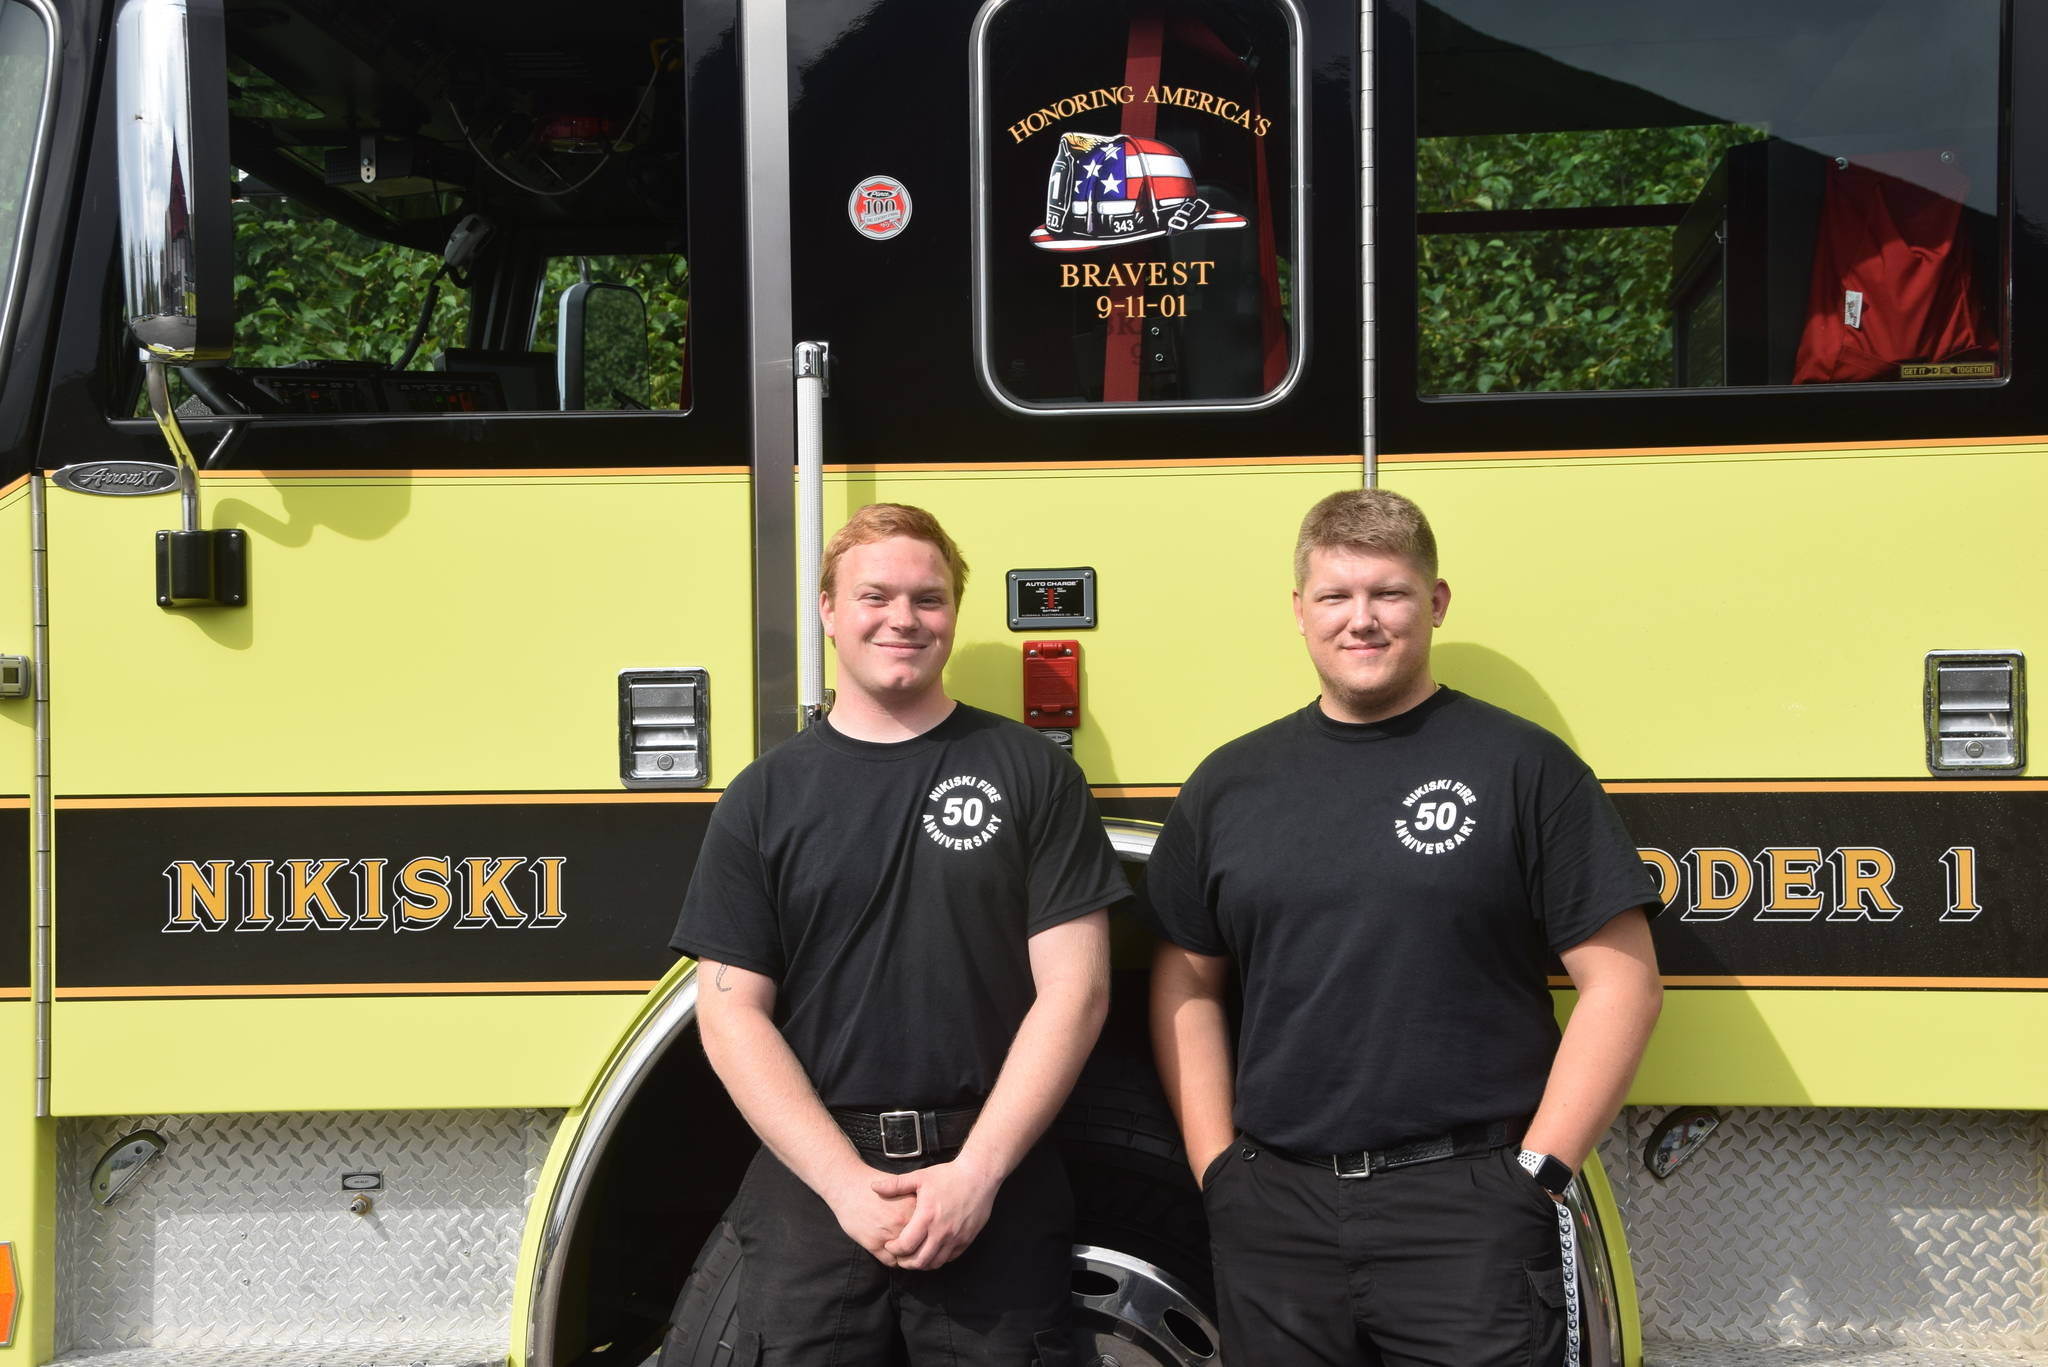 Volunteers Brandon Edwards, left, and Vlad Glushkov, right, smile for the camera at Fire Station #2 during the Nikiski Fire Department's 50th anniversary celebration in Nikiski, Alaska on July 15, 2019. (Photo by Brian Mazurek/Peninsula Clarion)